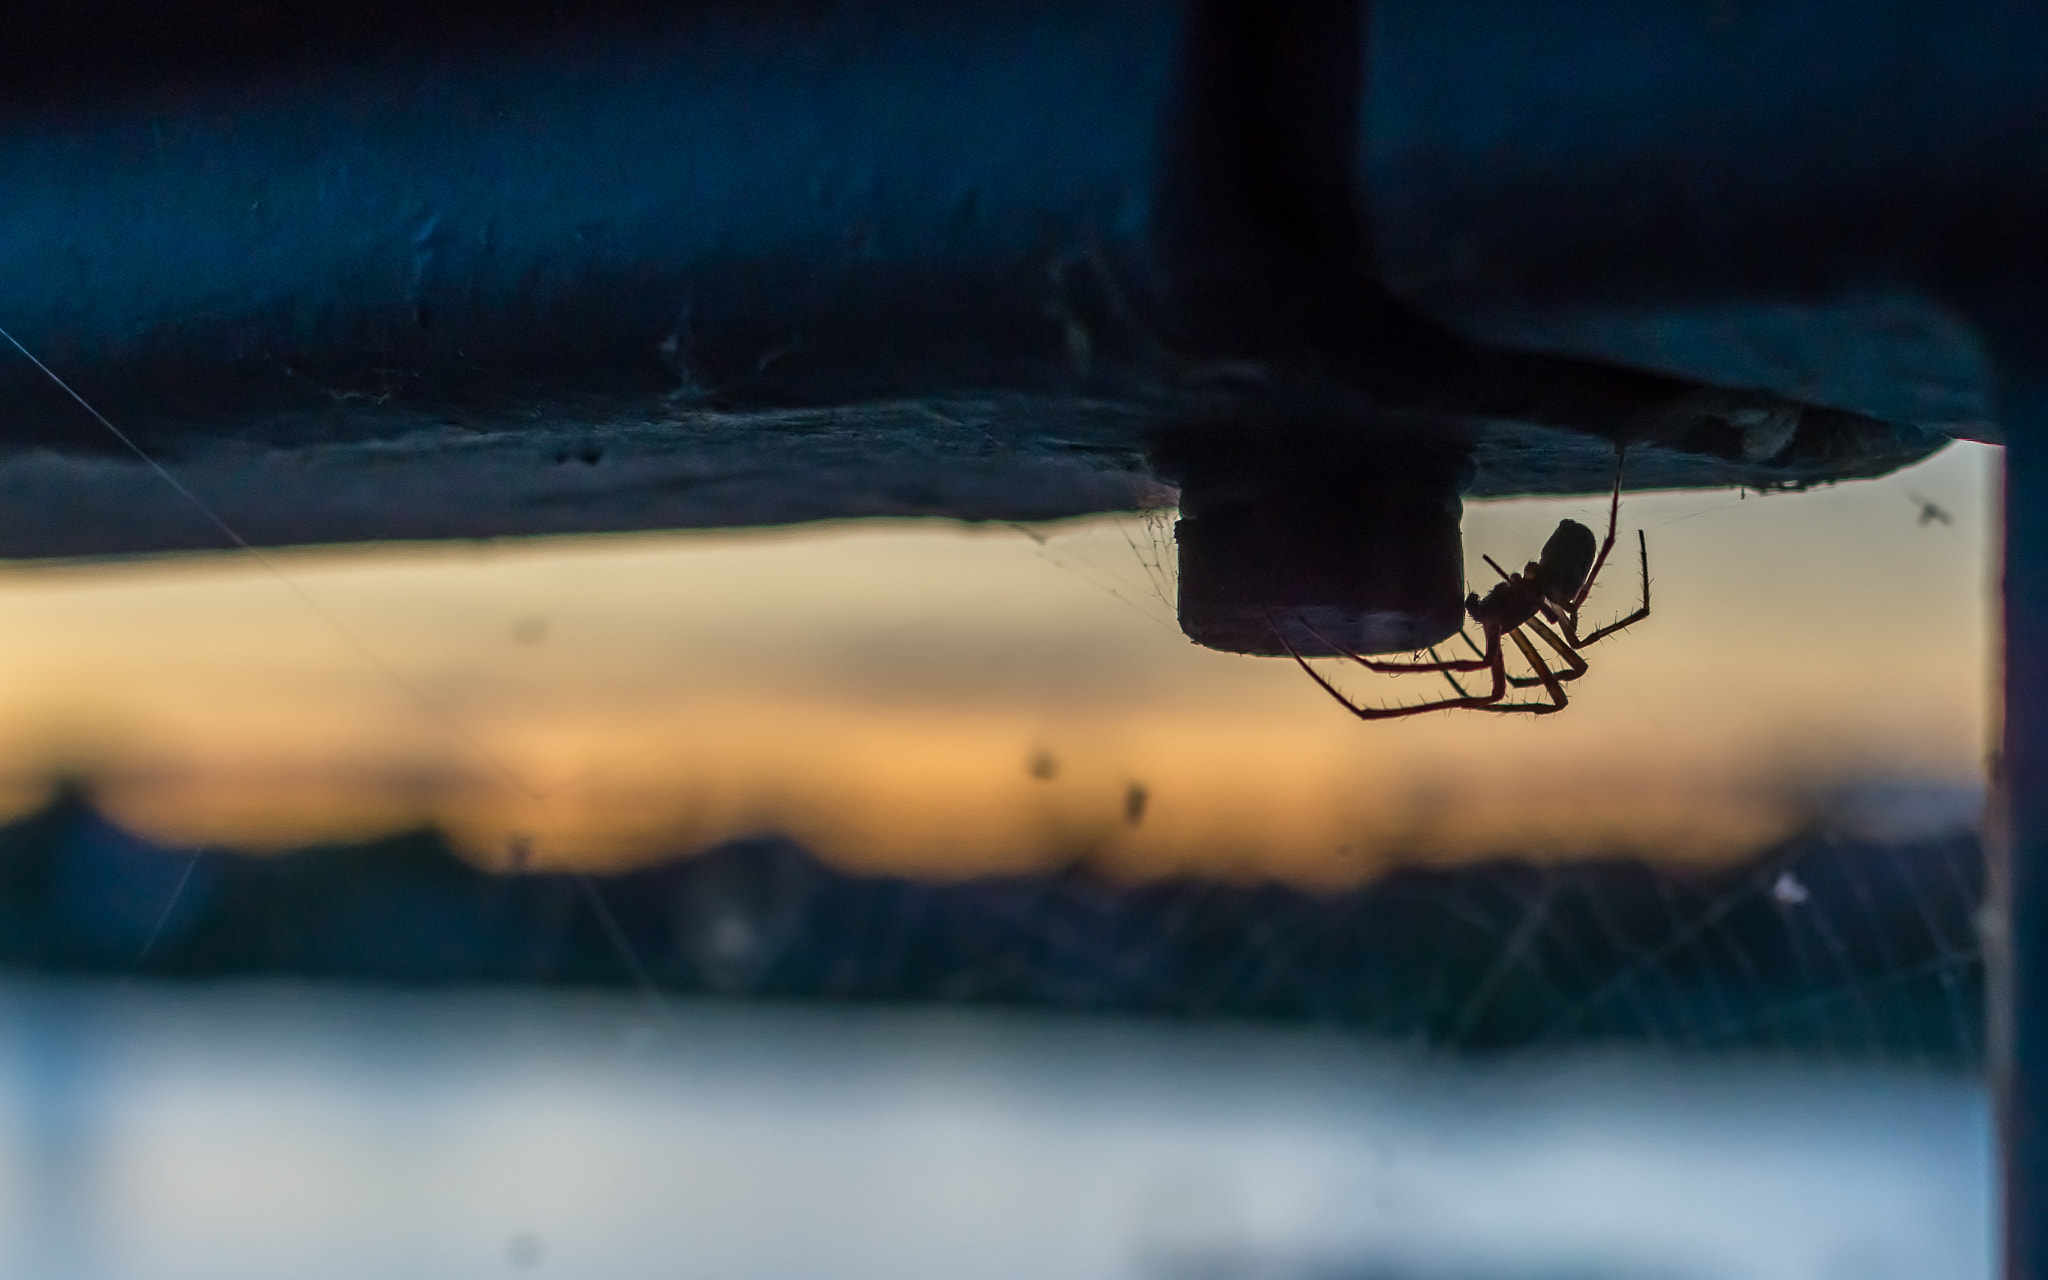 Photograph Lurking in the Dusk by Sabri R. on 500px